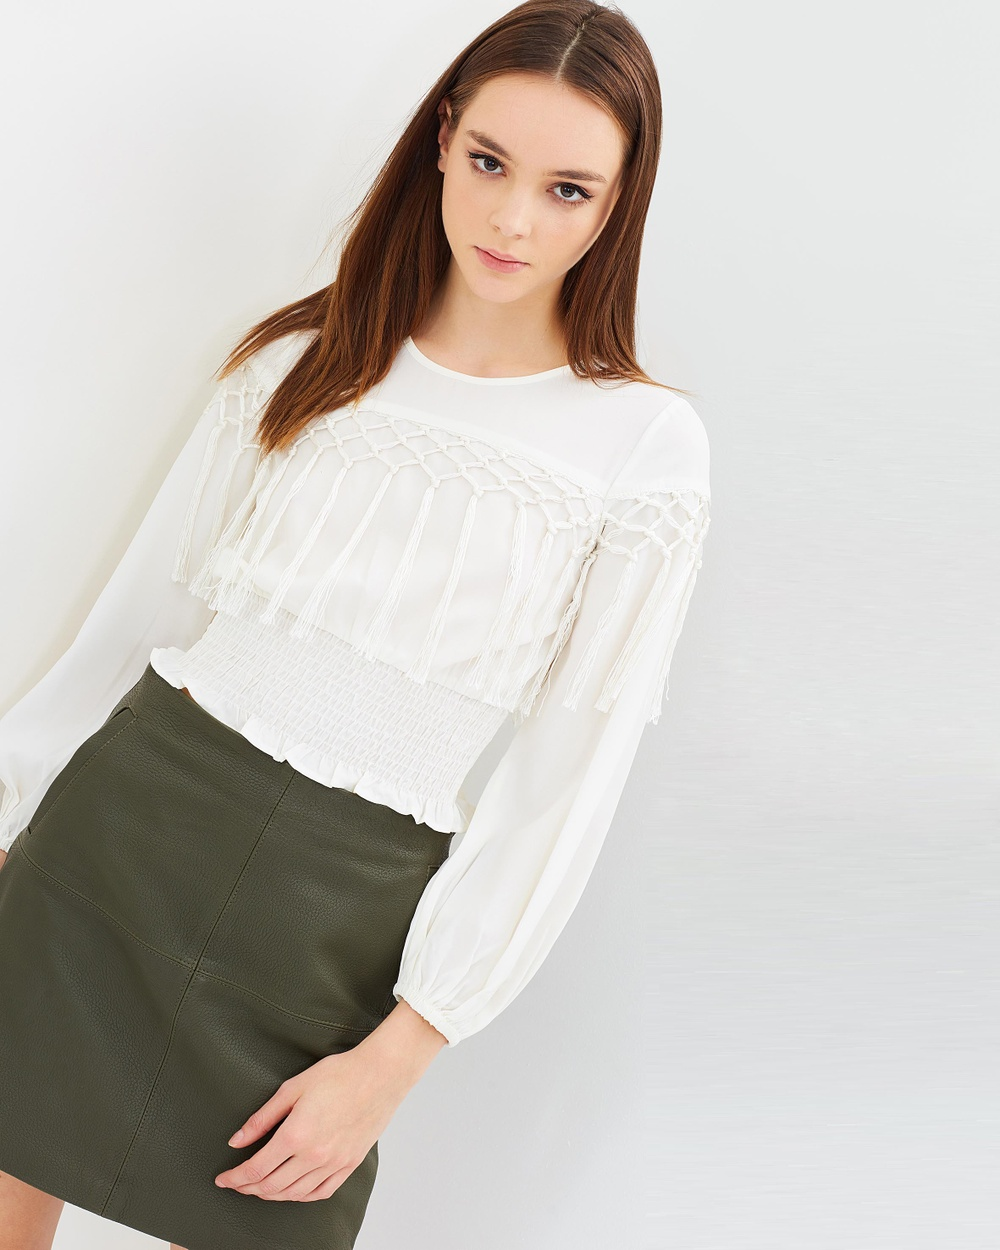 Miss Selfridge Long Sleeve Tassel Top Cropped tops Cream Long Sleeve Tassel Top